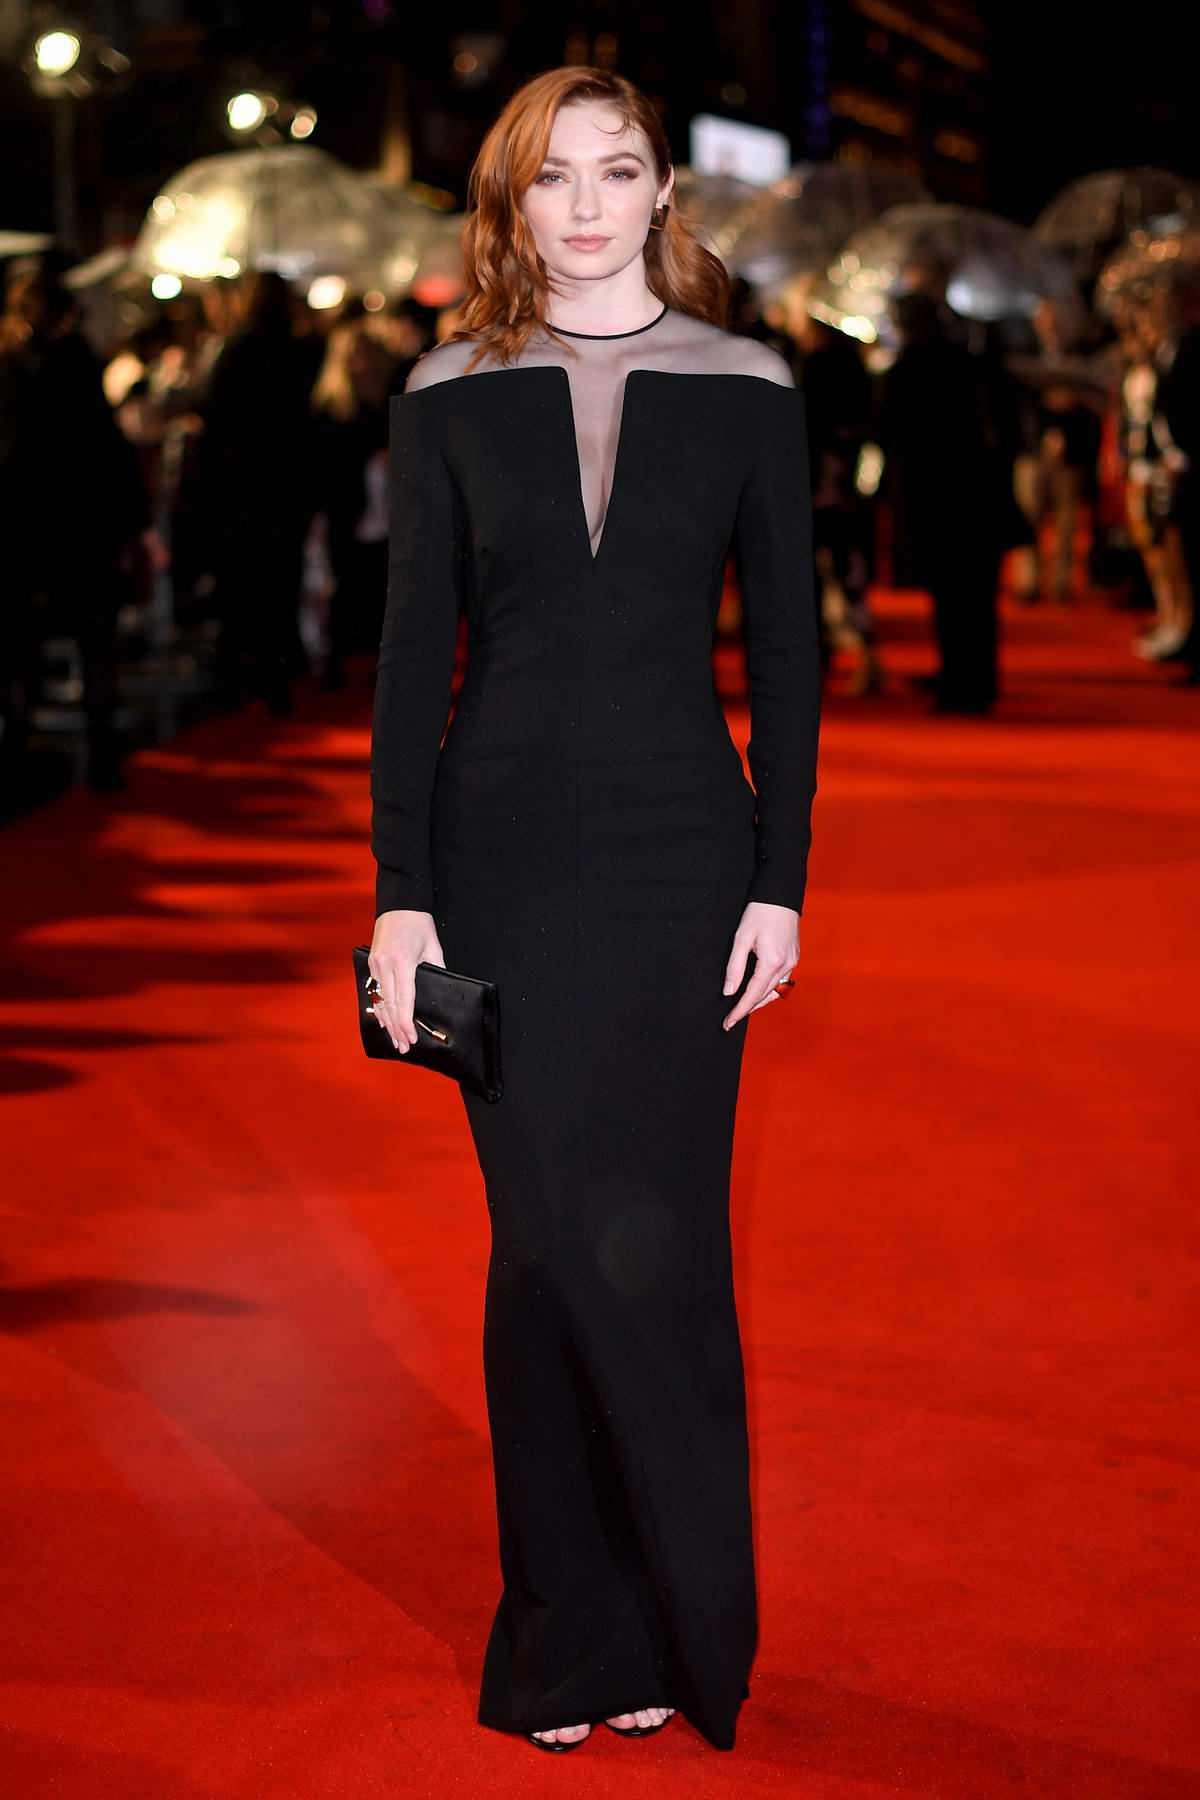 Eleanor Tomlinson attends 'Colette' premiere and BFI Patrons gala during the 62nd BFI London Film Festival in London, UK